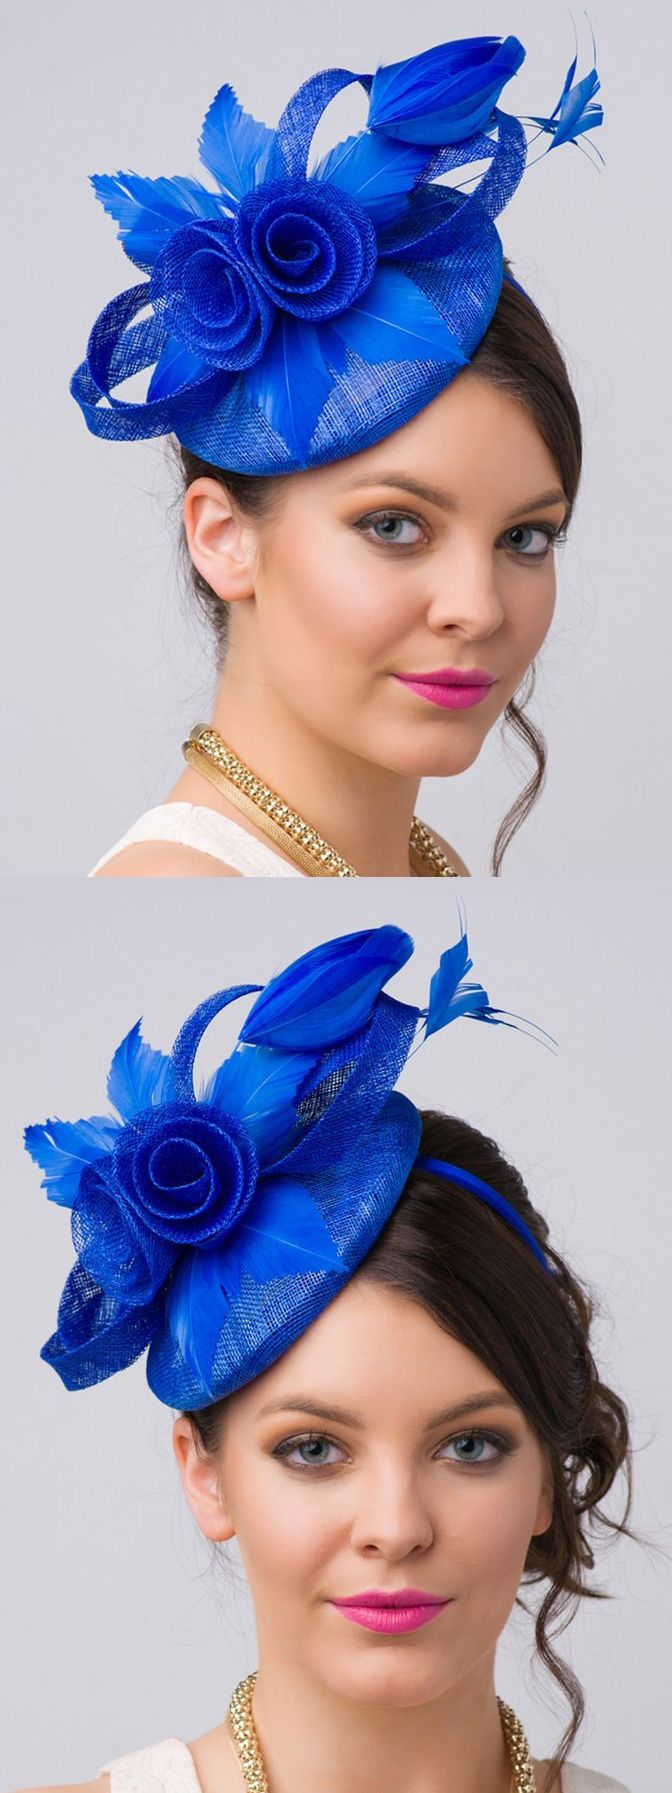 Royal Blue fascinator for day at the races or spring wedding in Brilliant Royal Blue. Kentucky Derby, Royal Ascot, Dubai World Cup Designer Hat for Racing Fashion Outfits. Fashionista Hats for the Races. #weddingoutfits #racedayoutfits #kentuckyderby #royalascot #ascothats #millinery #handmade #etsyfinds #affiliatelink #bluehats #bluefascinator #fascinators #designermillinery #designerhats